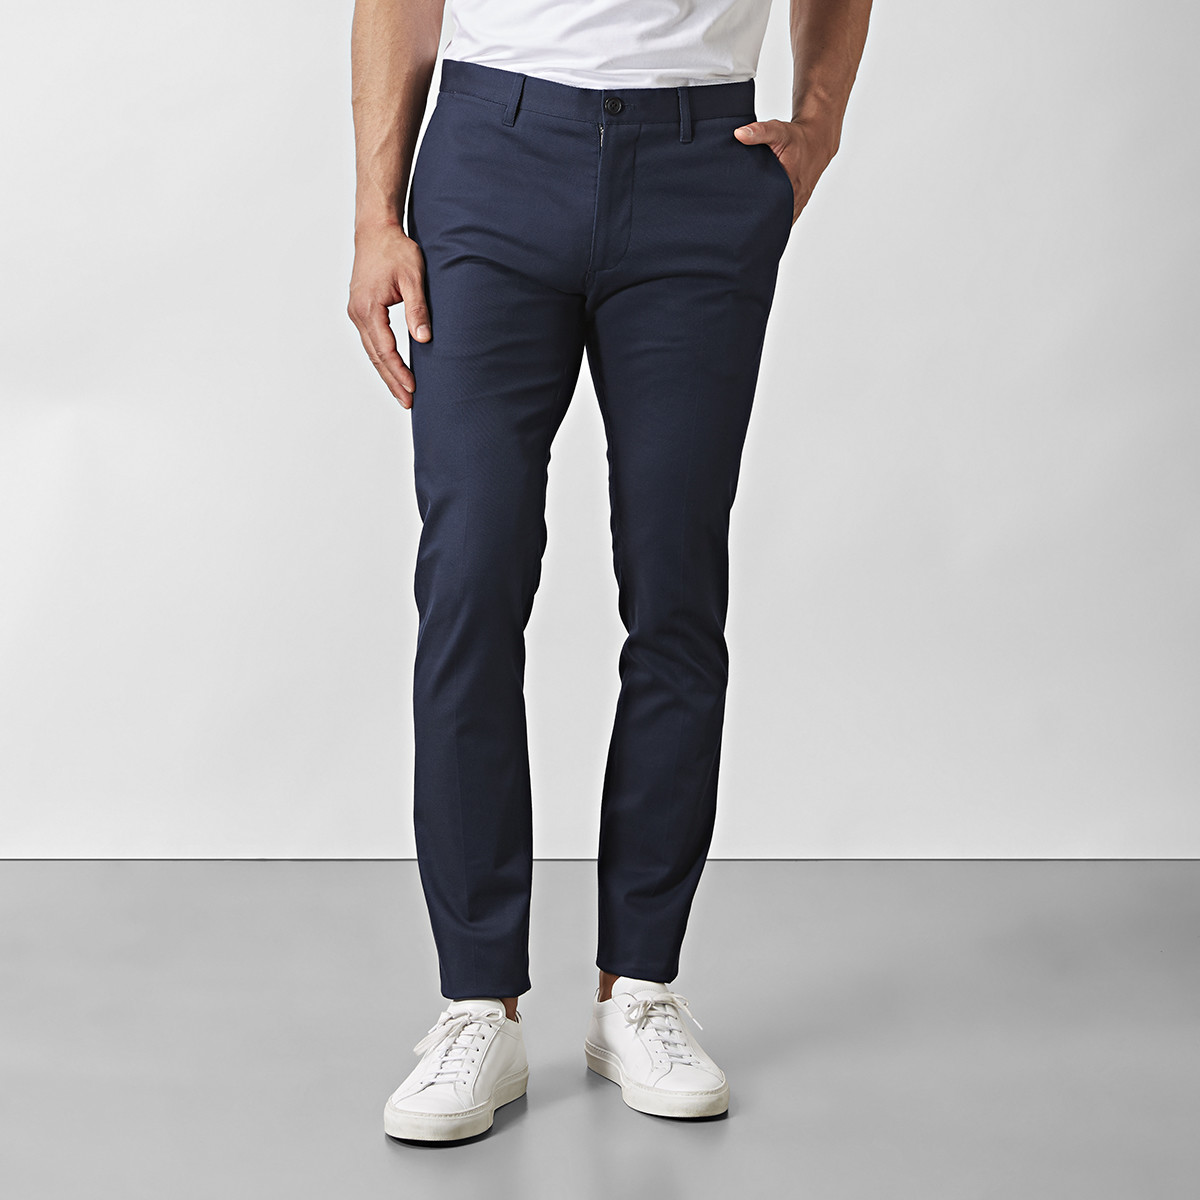 Byxa Stanton Twill Stretch Blå | Riley | Brothers.se